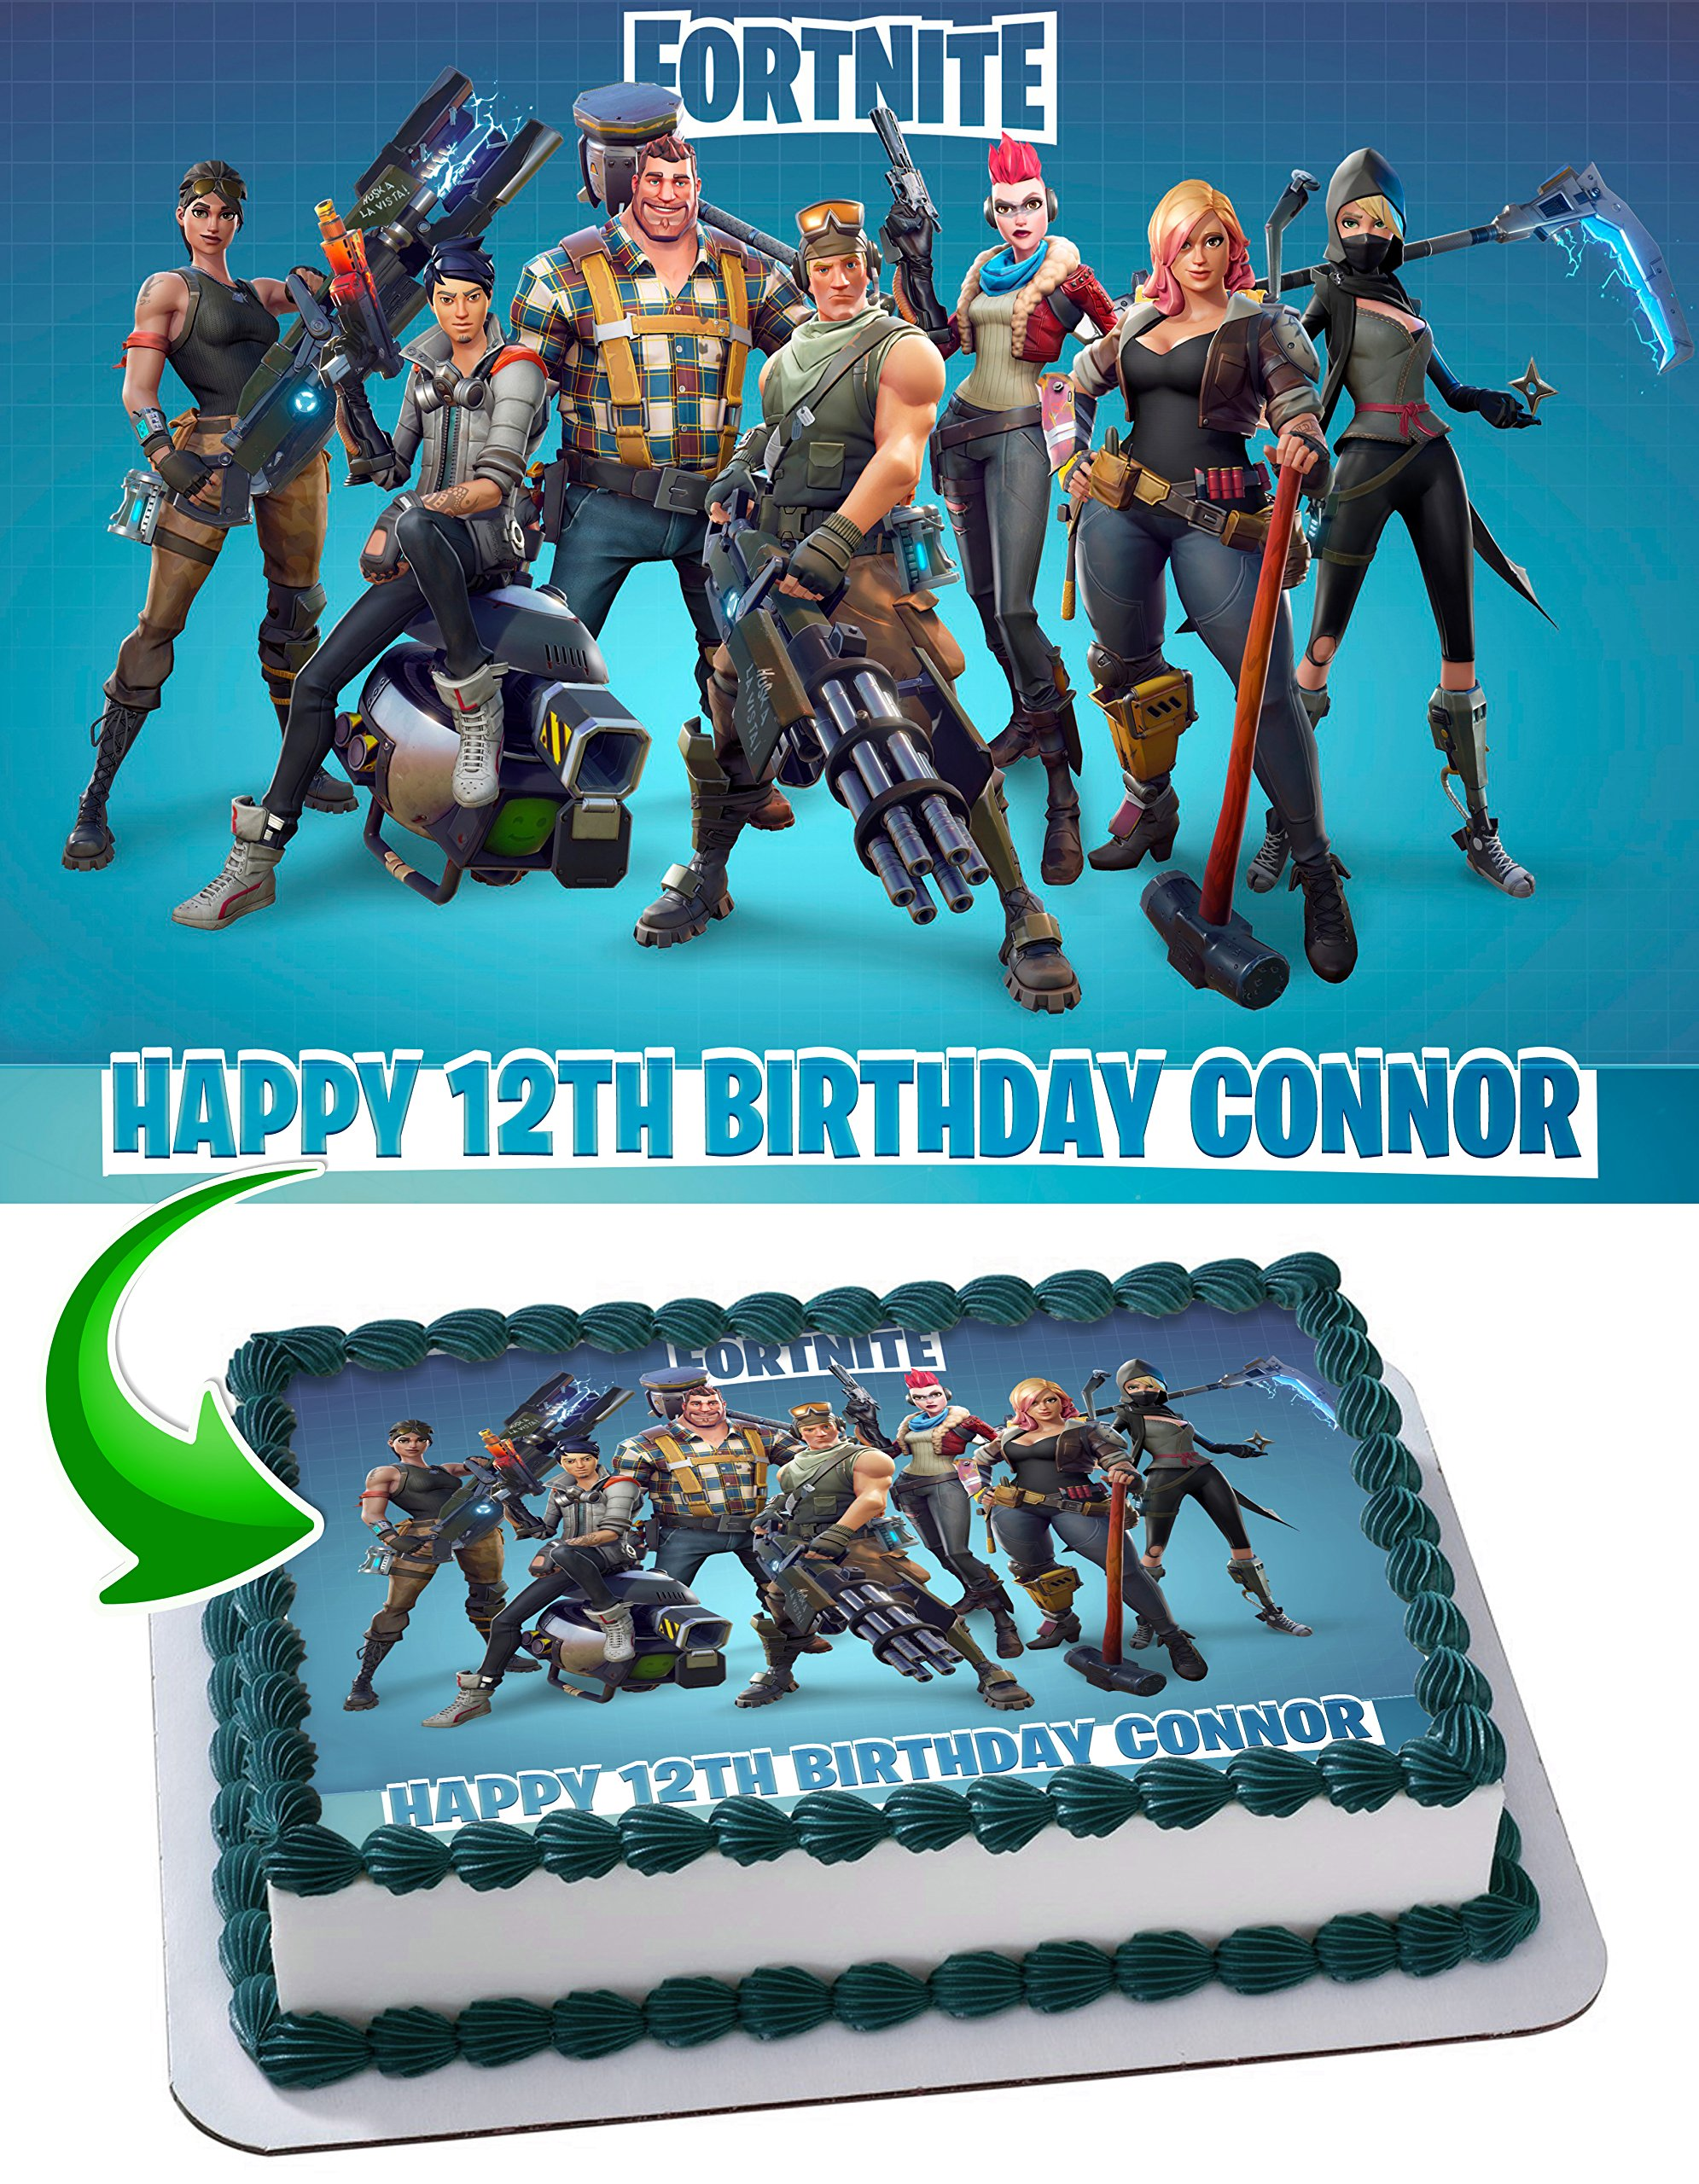 Fortnite Edible Image Cake Topper Personalized Icing Sugar Paper A4 Sheet Edible Frosting Photo Cake 1/4 ~ Best Quality Edible Image for cake by EdibleInkArt